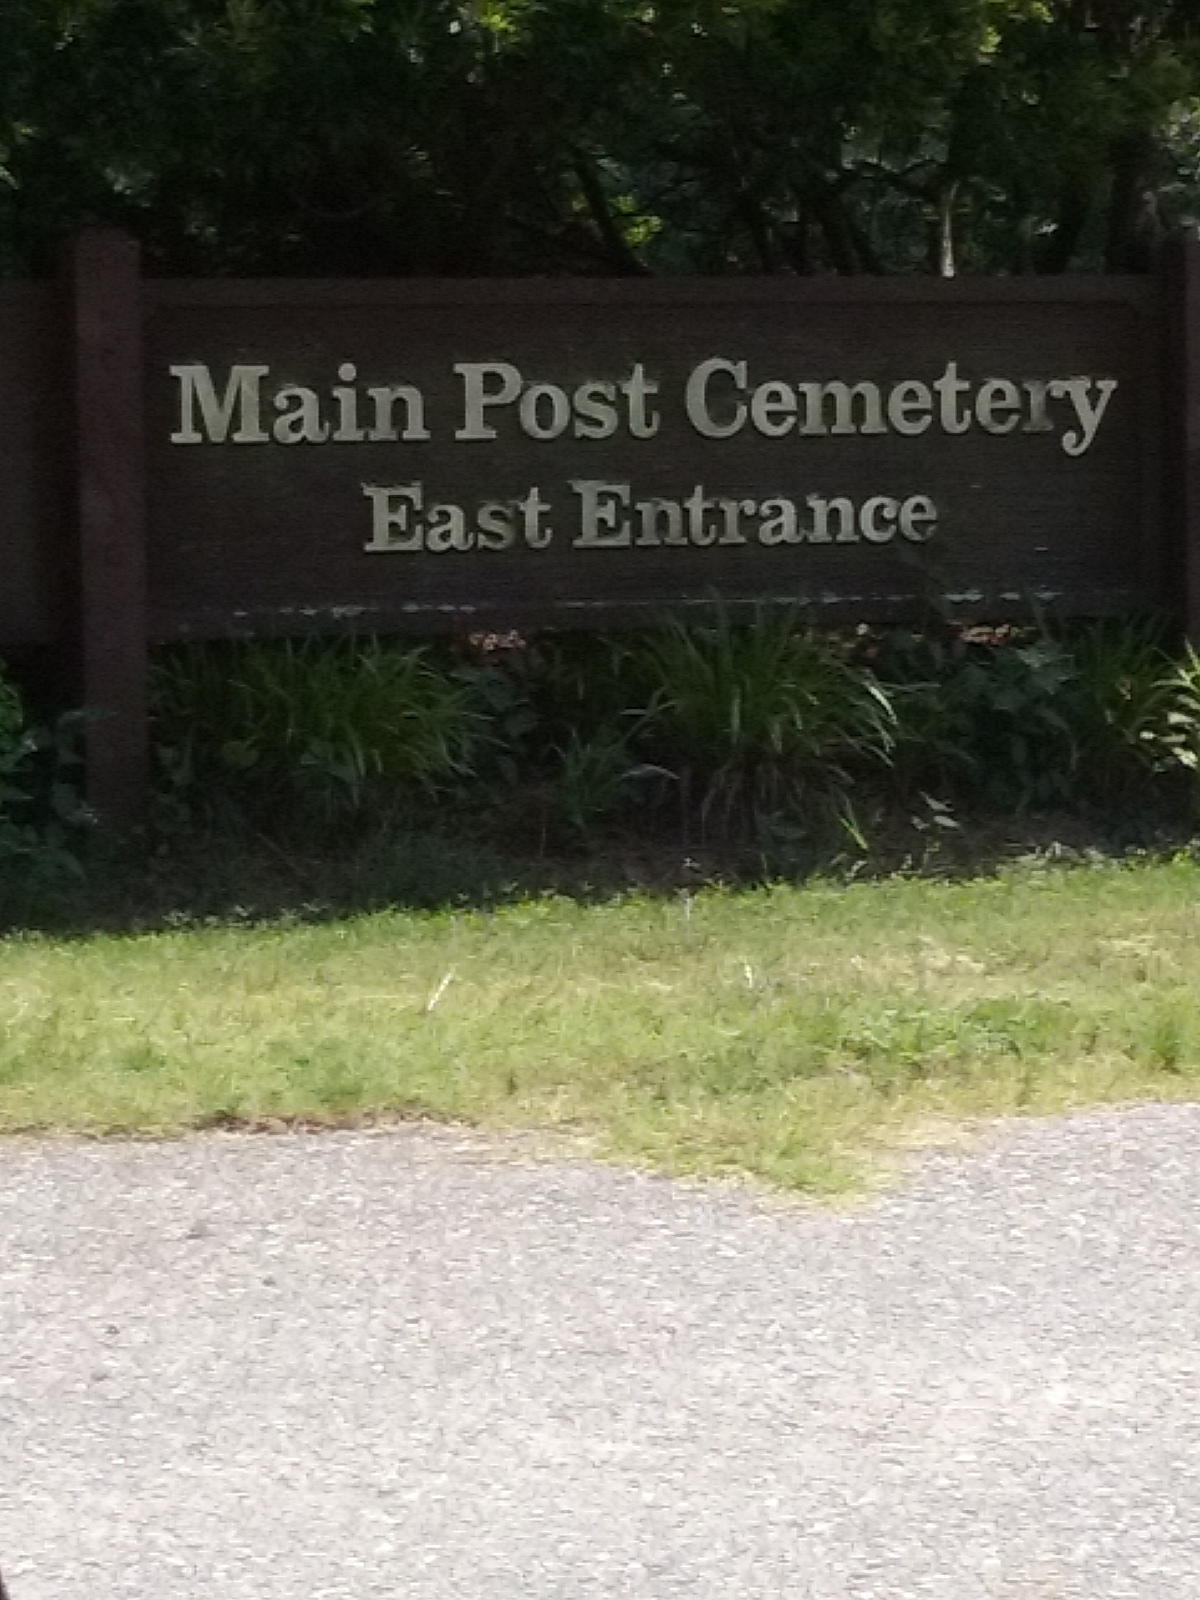 Main Post Cemetery was established in 1918, the same year Fort Bragg was founded.